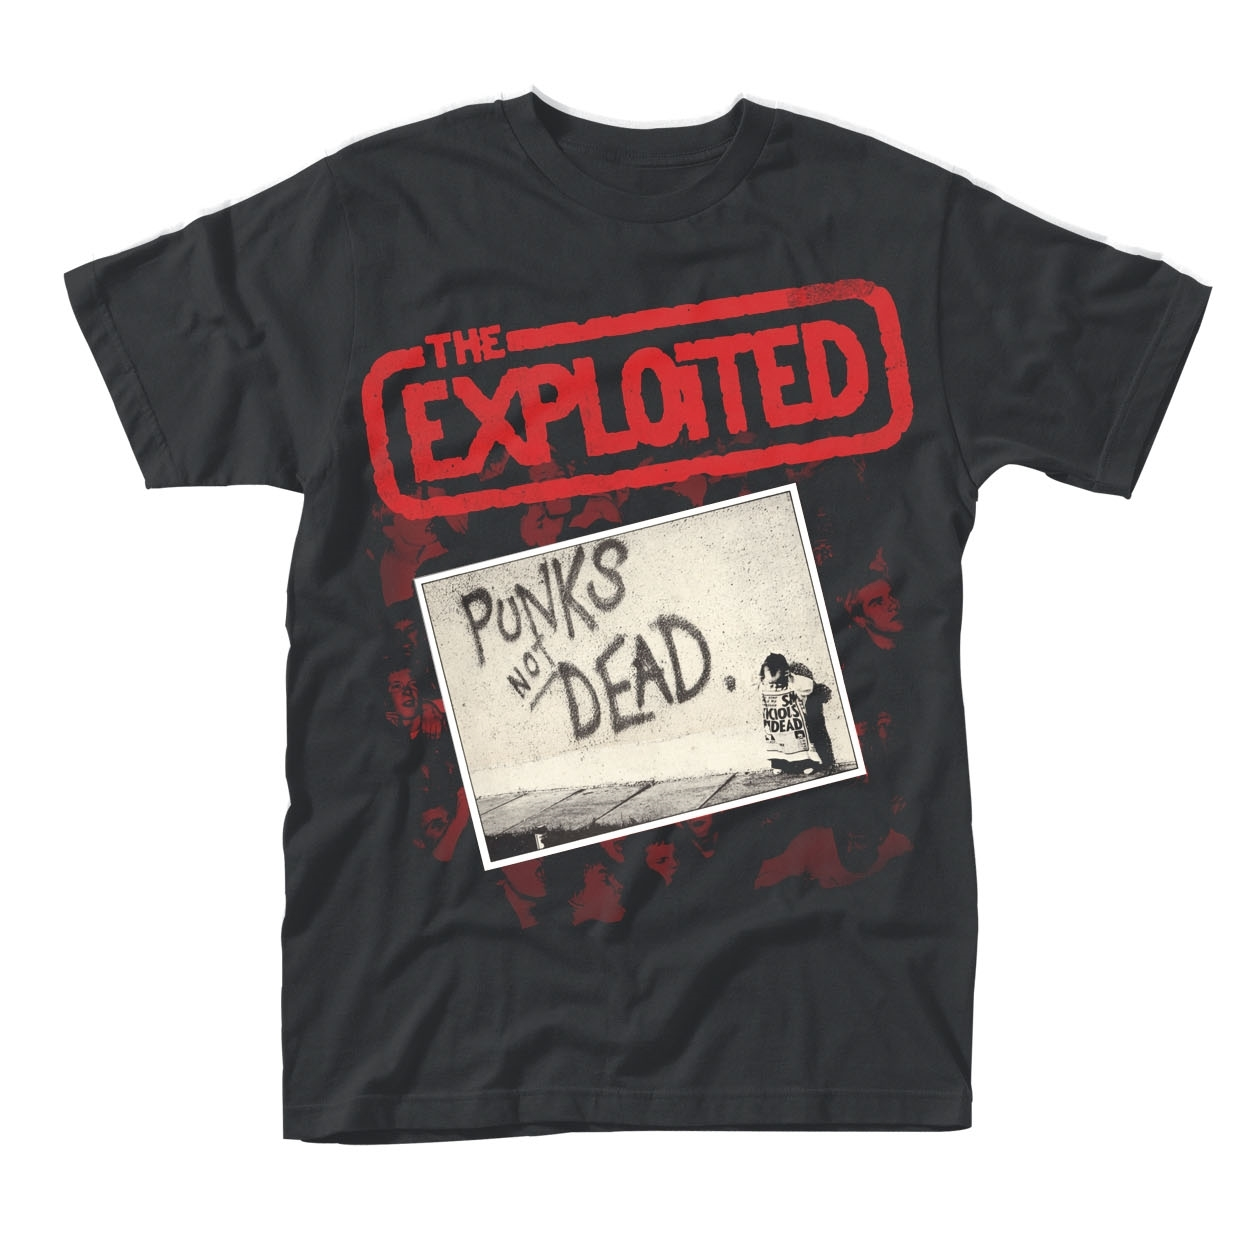 The Exploited Punks Not Dead